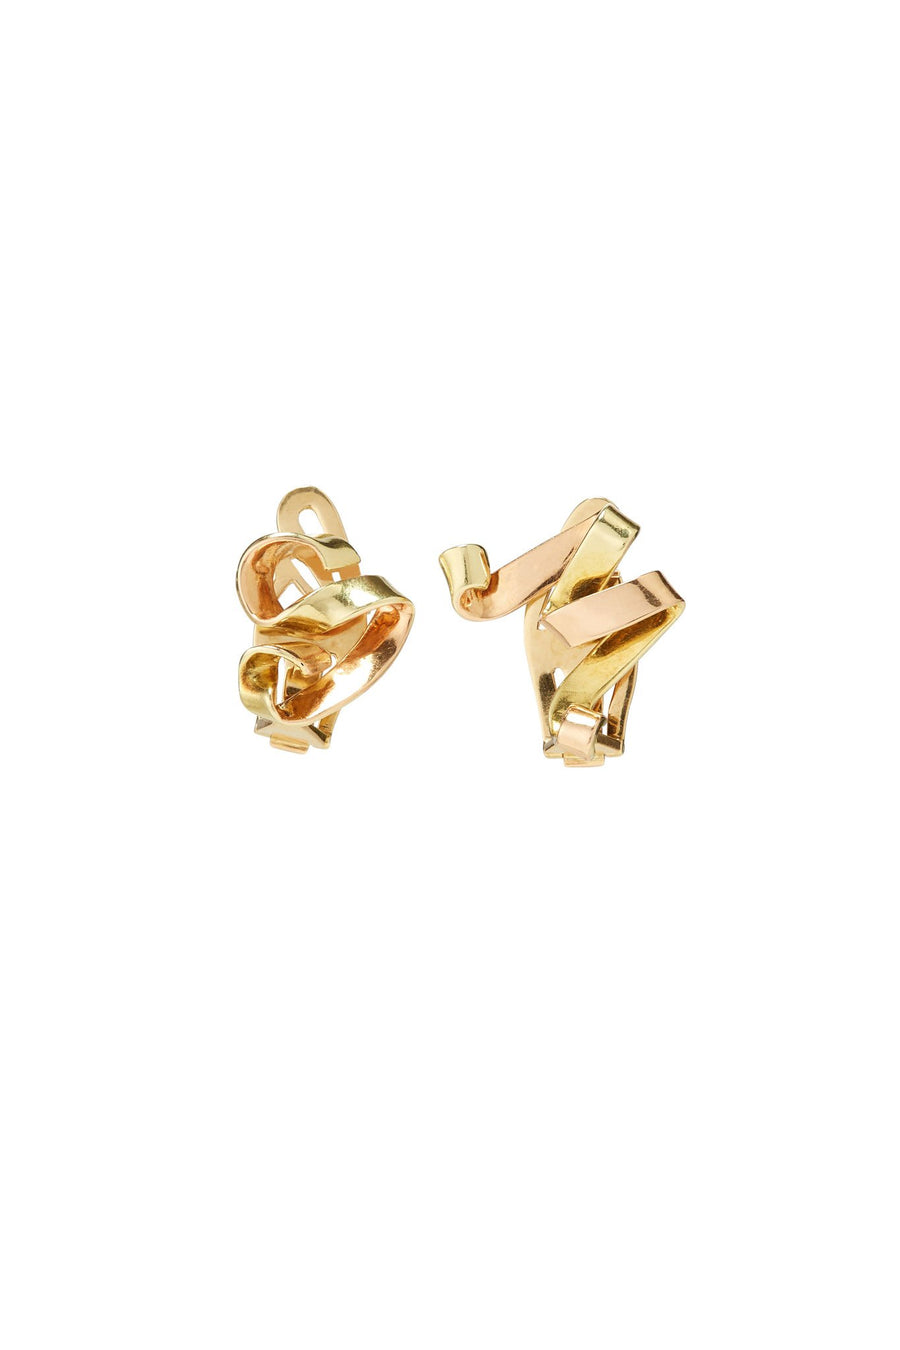 Paul Flato 14K Gold S & M Clip Earrings